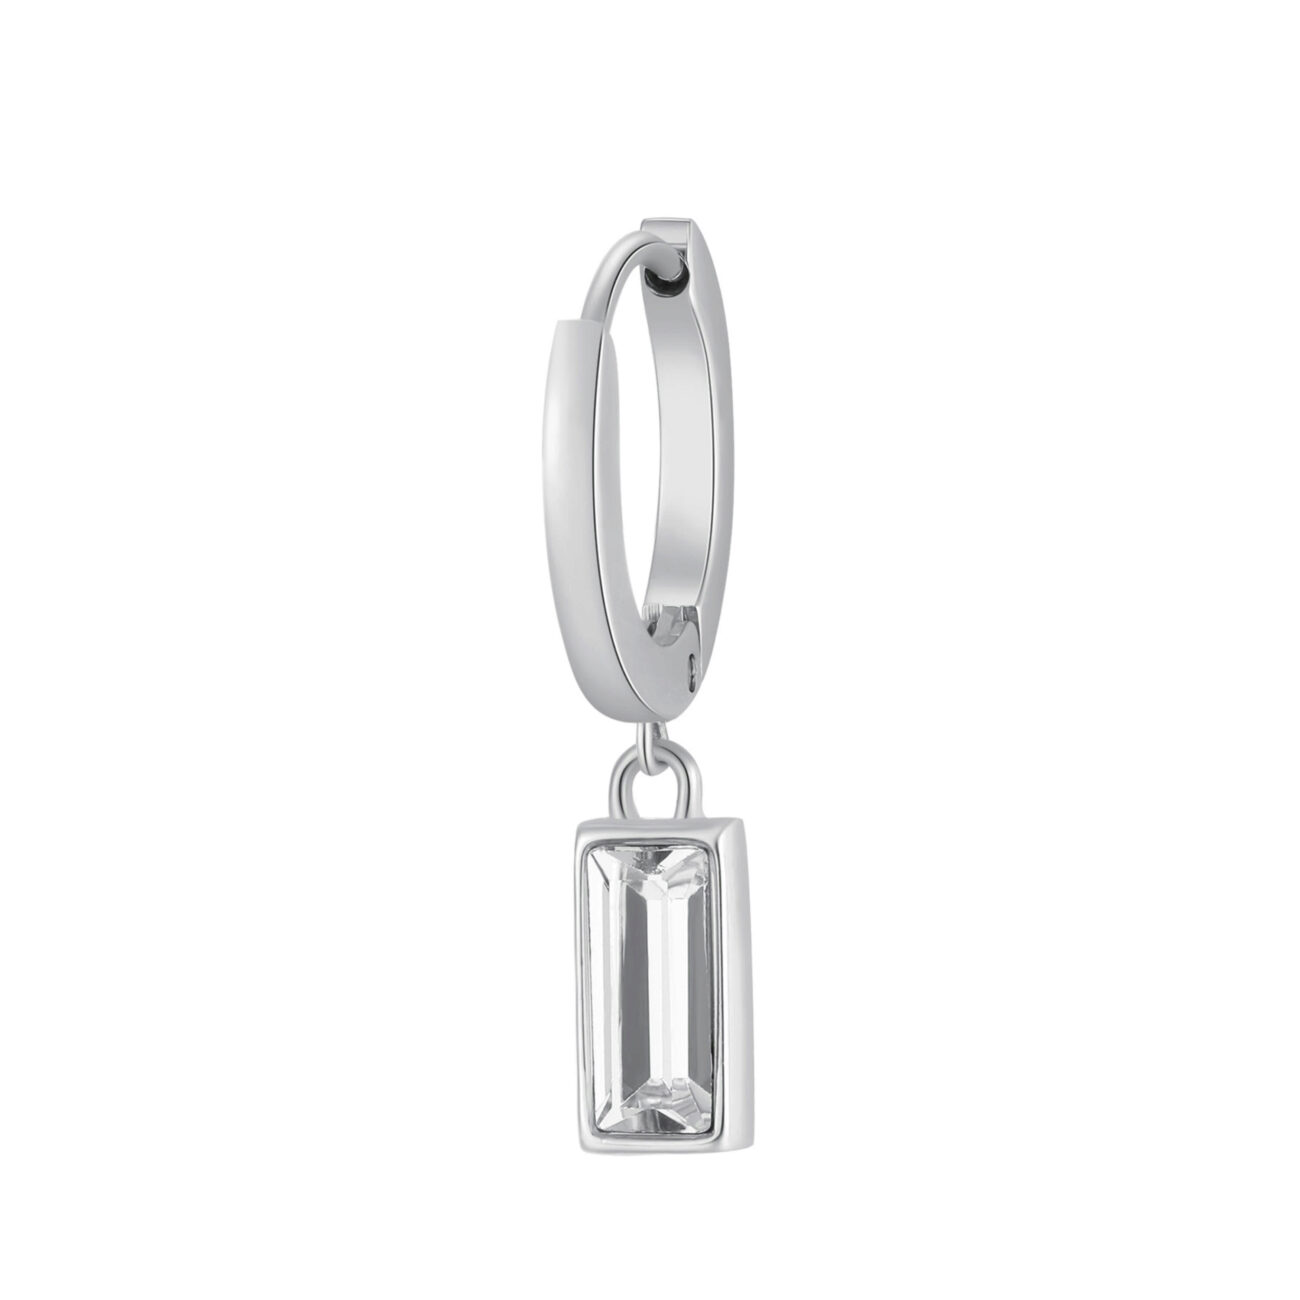 Single earring in 316L stainless steel with pendant with crystal.